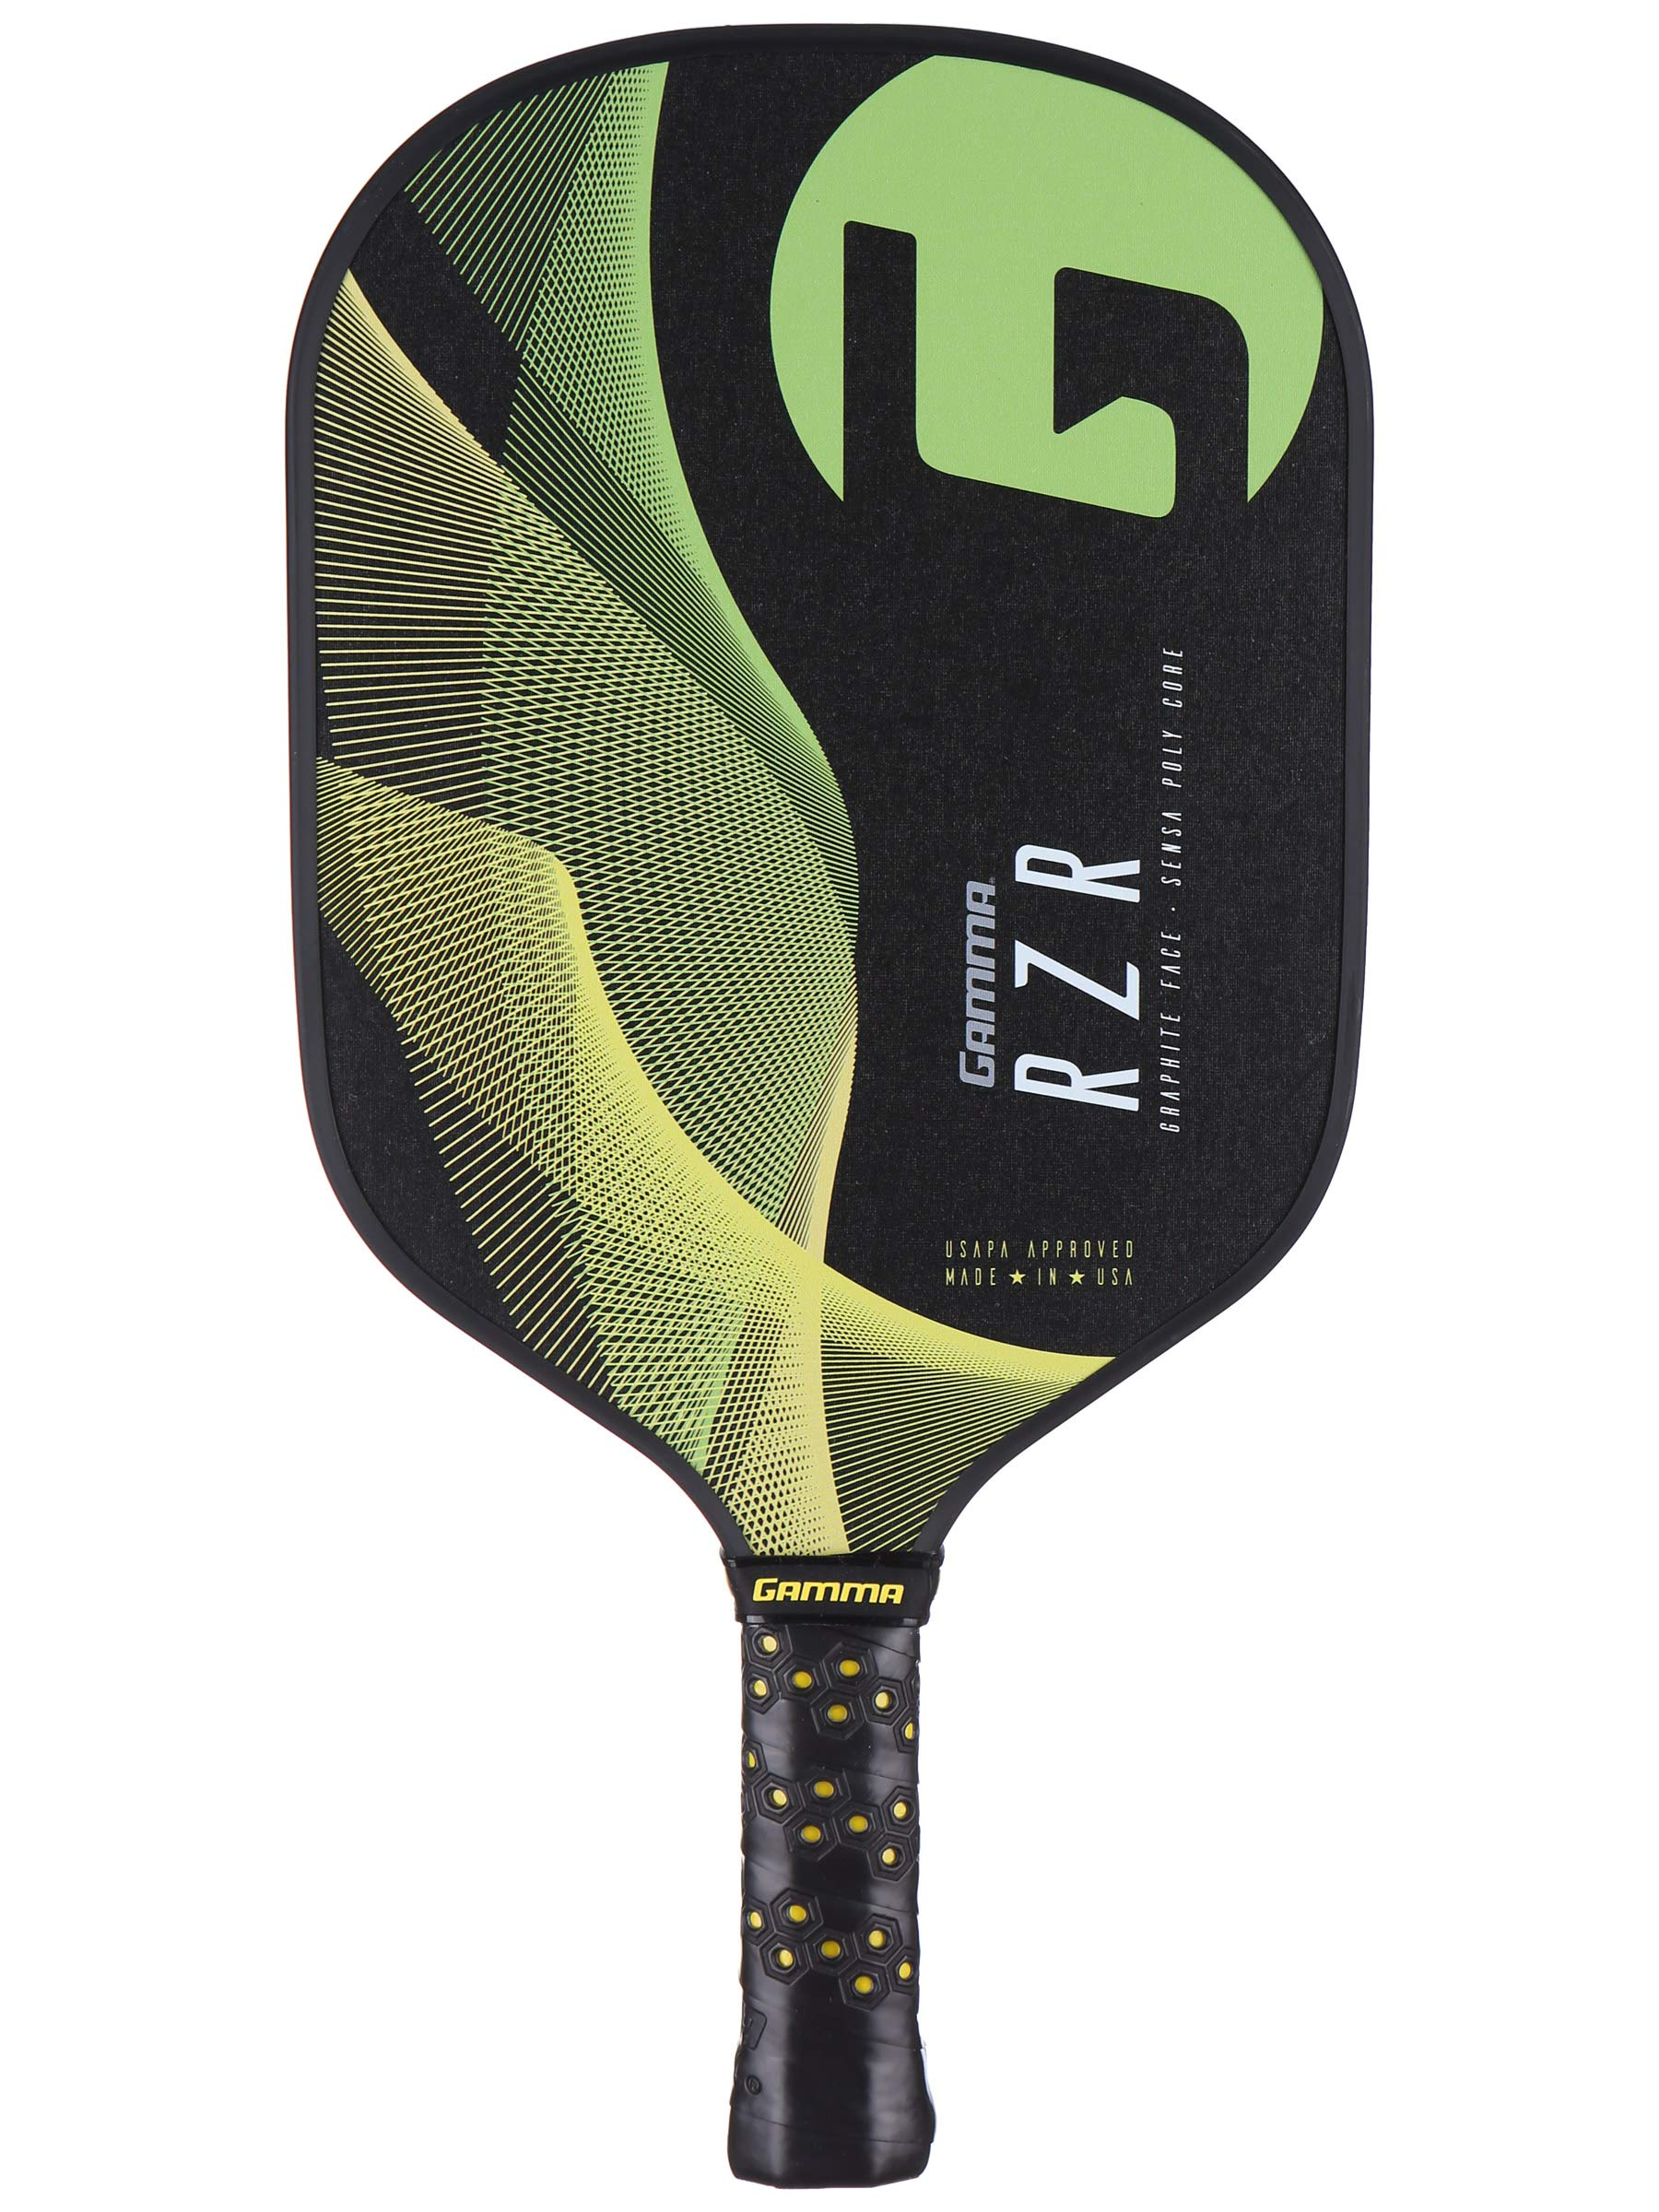 Gamma RZR Composite Pickleball Paddle: Pickle Ball Paddles for Indoor & Outdoor Play - USAPA Approved Racquet for Adults & Kids - Green/Yellow by Gamma (Image #1)